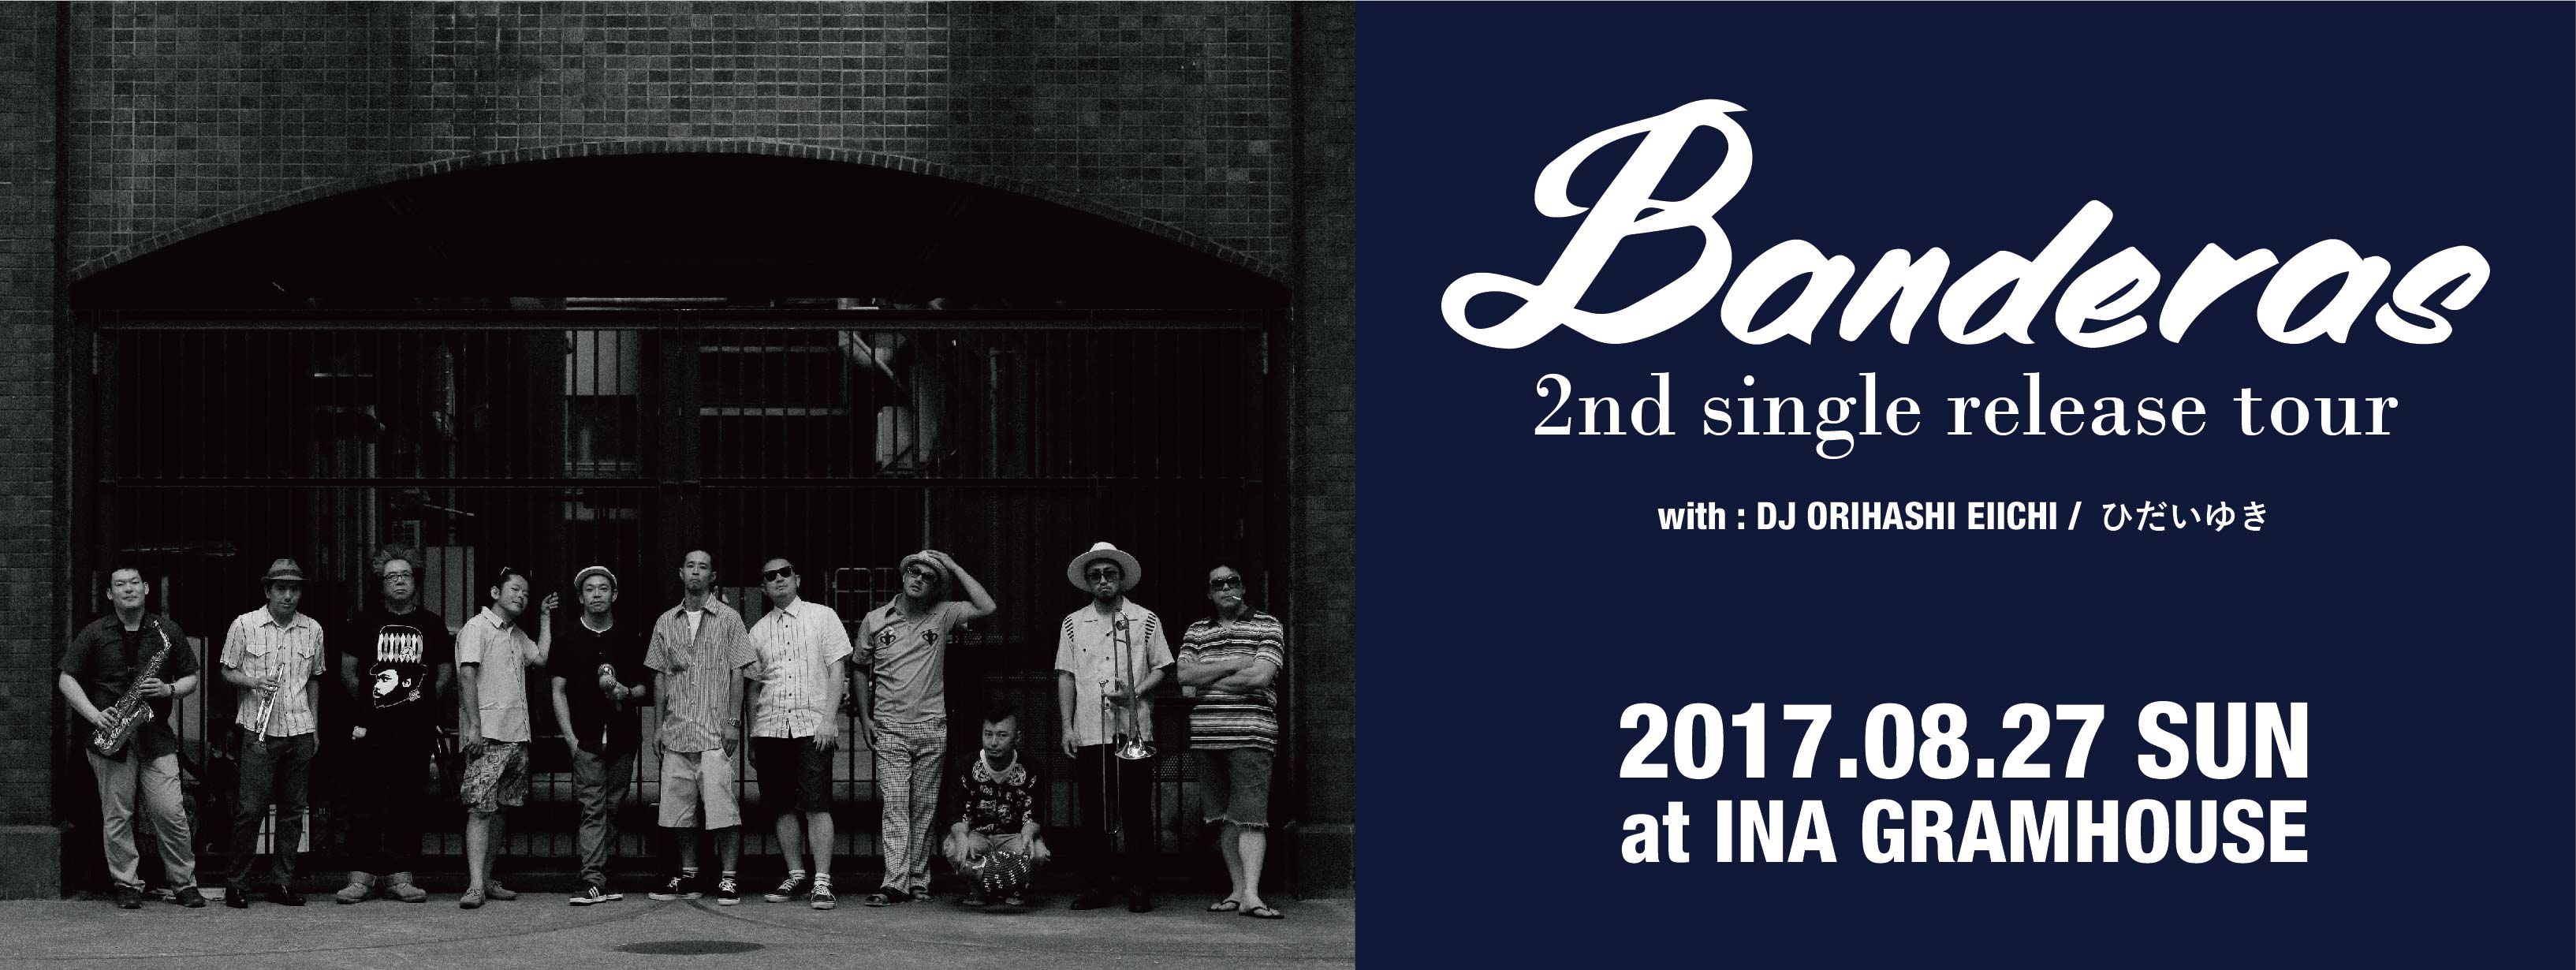 Banderas 2nd single release tour!!